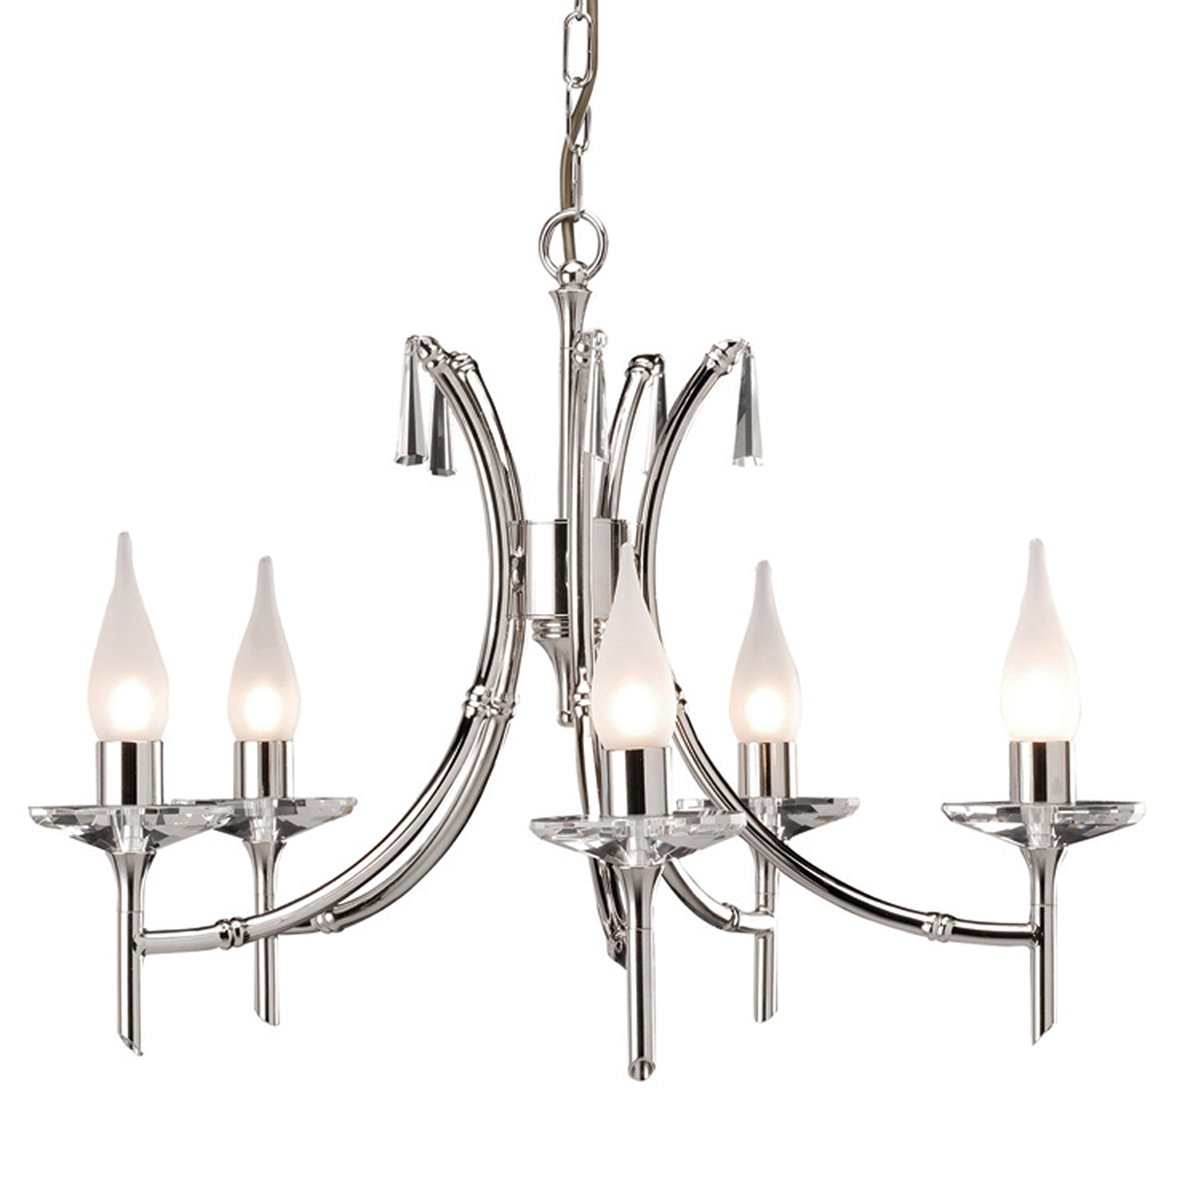 Elstead BR5 Brightwell 5 Light Chandelier in Polished Nickel